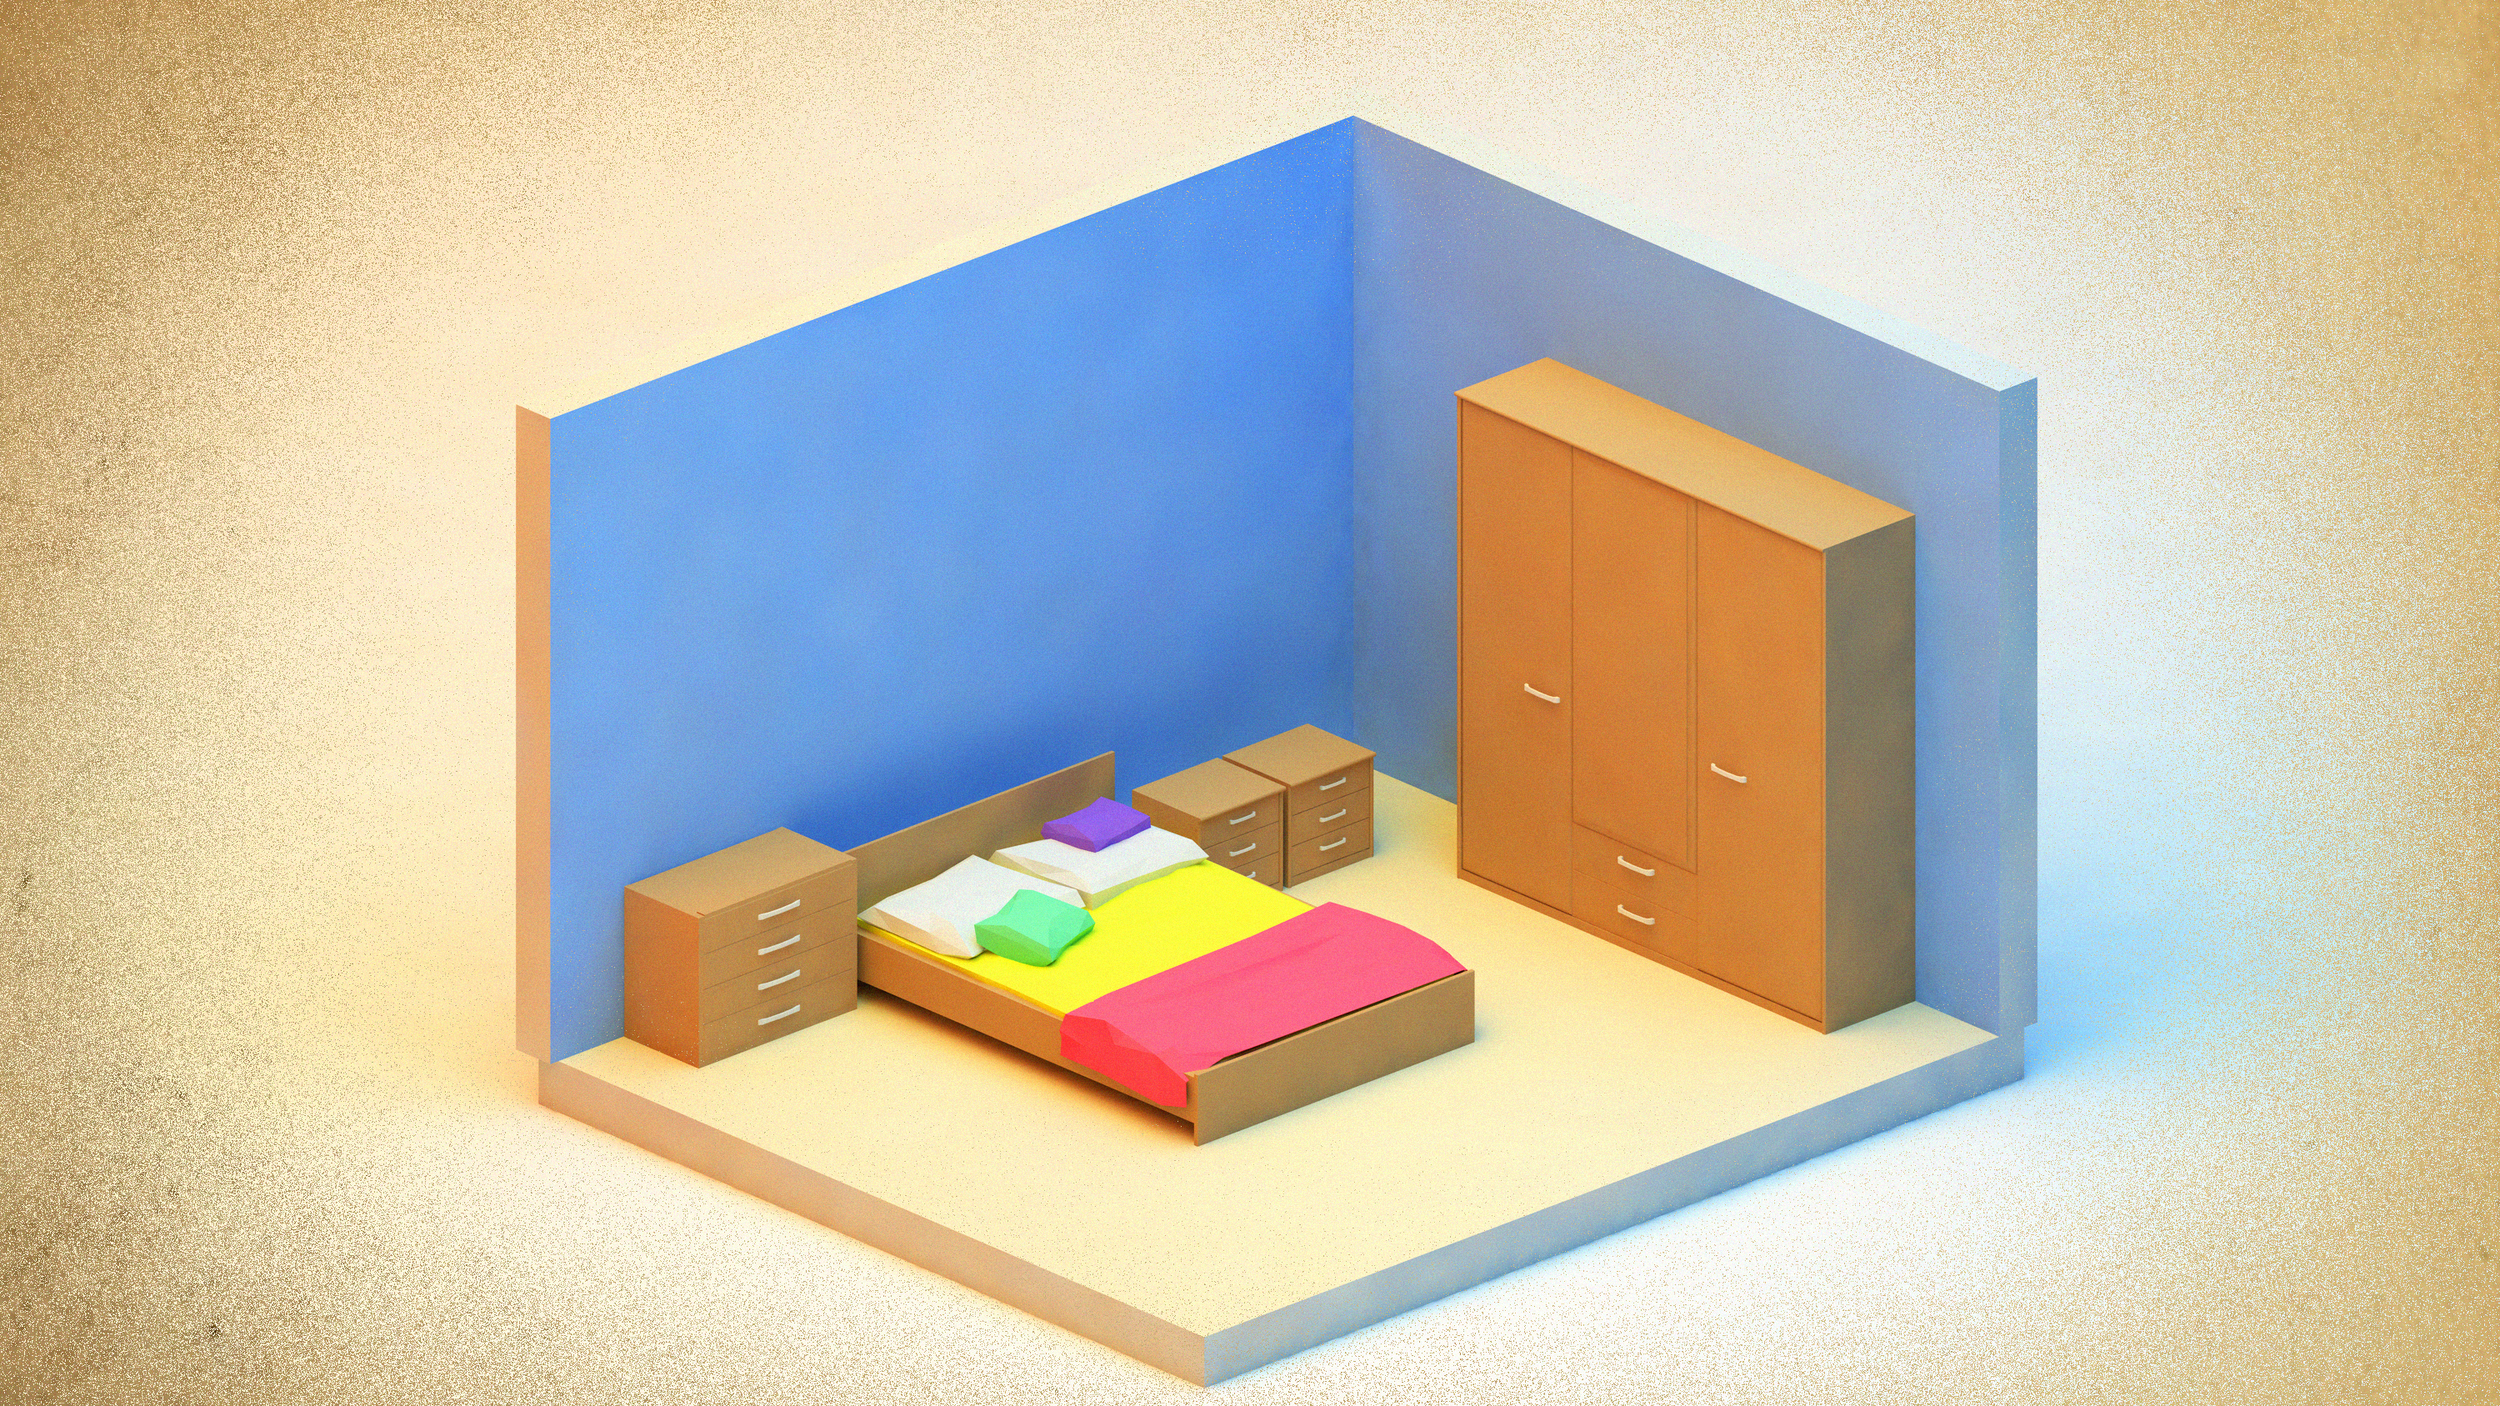 Bedroom w/ AR